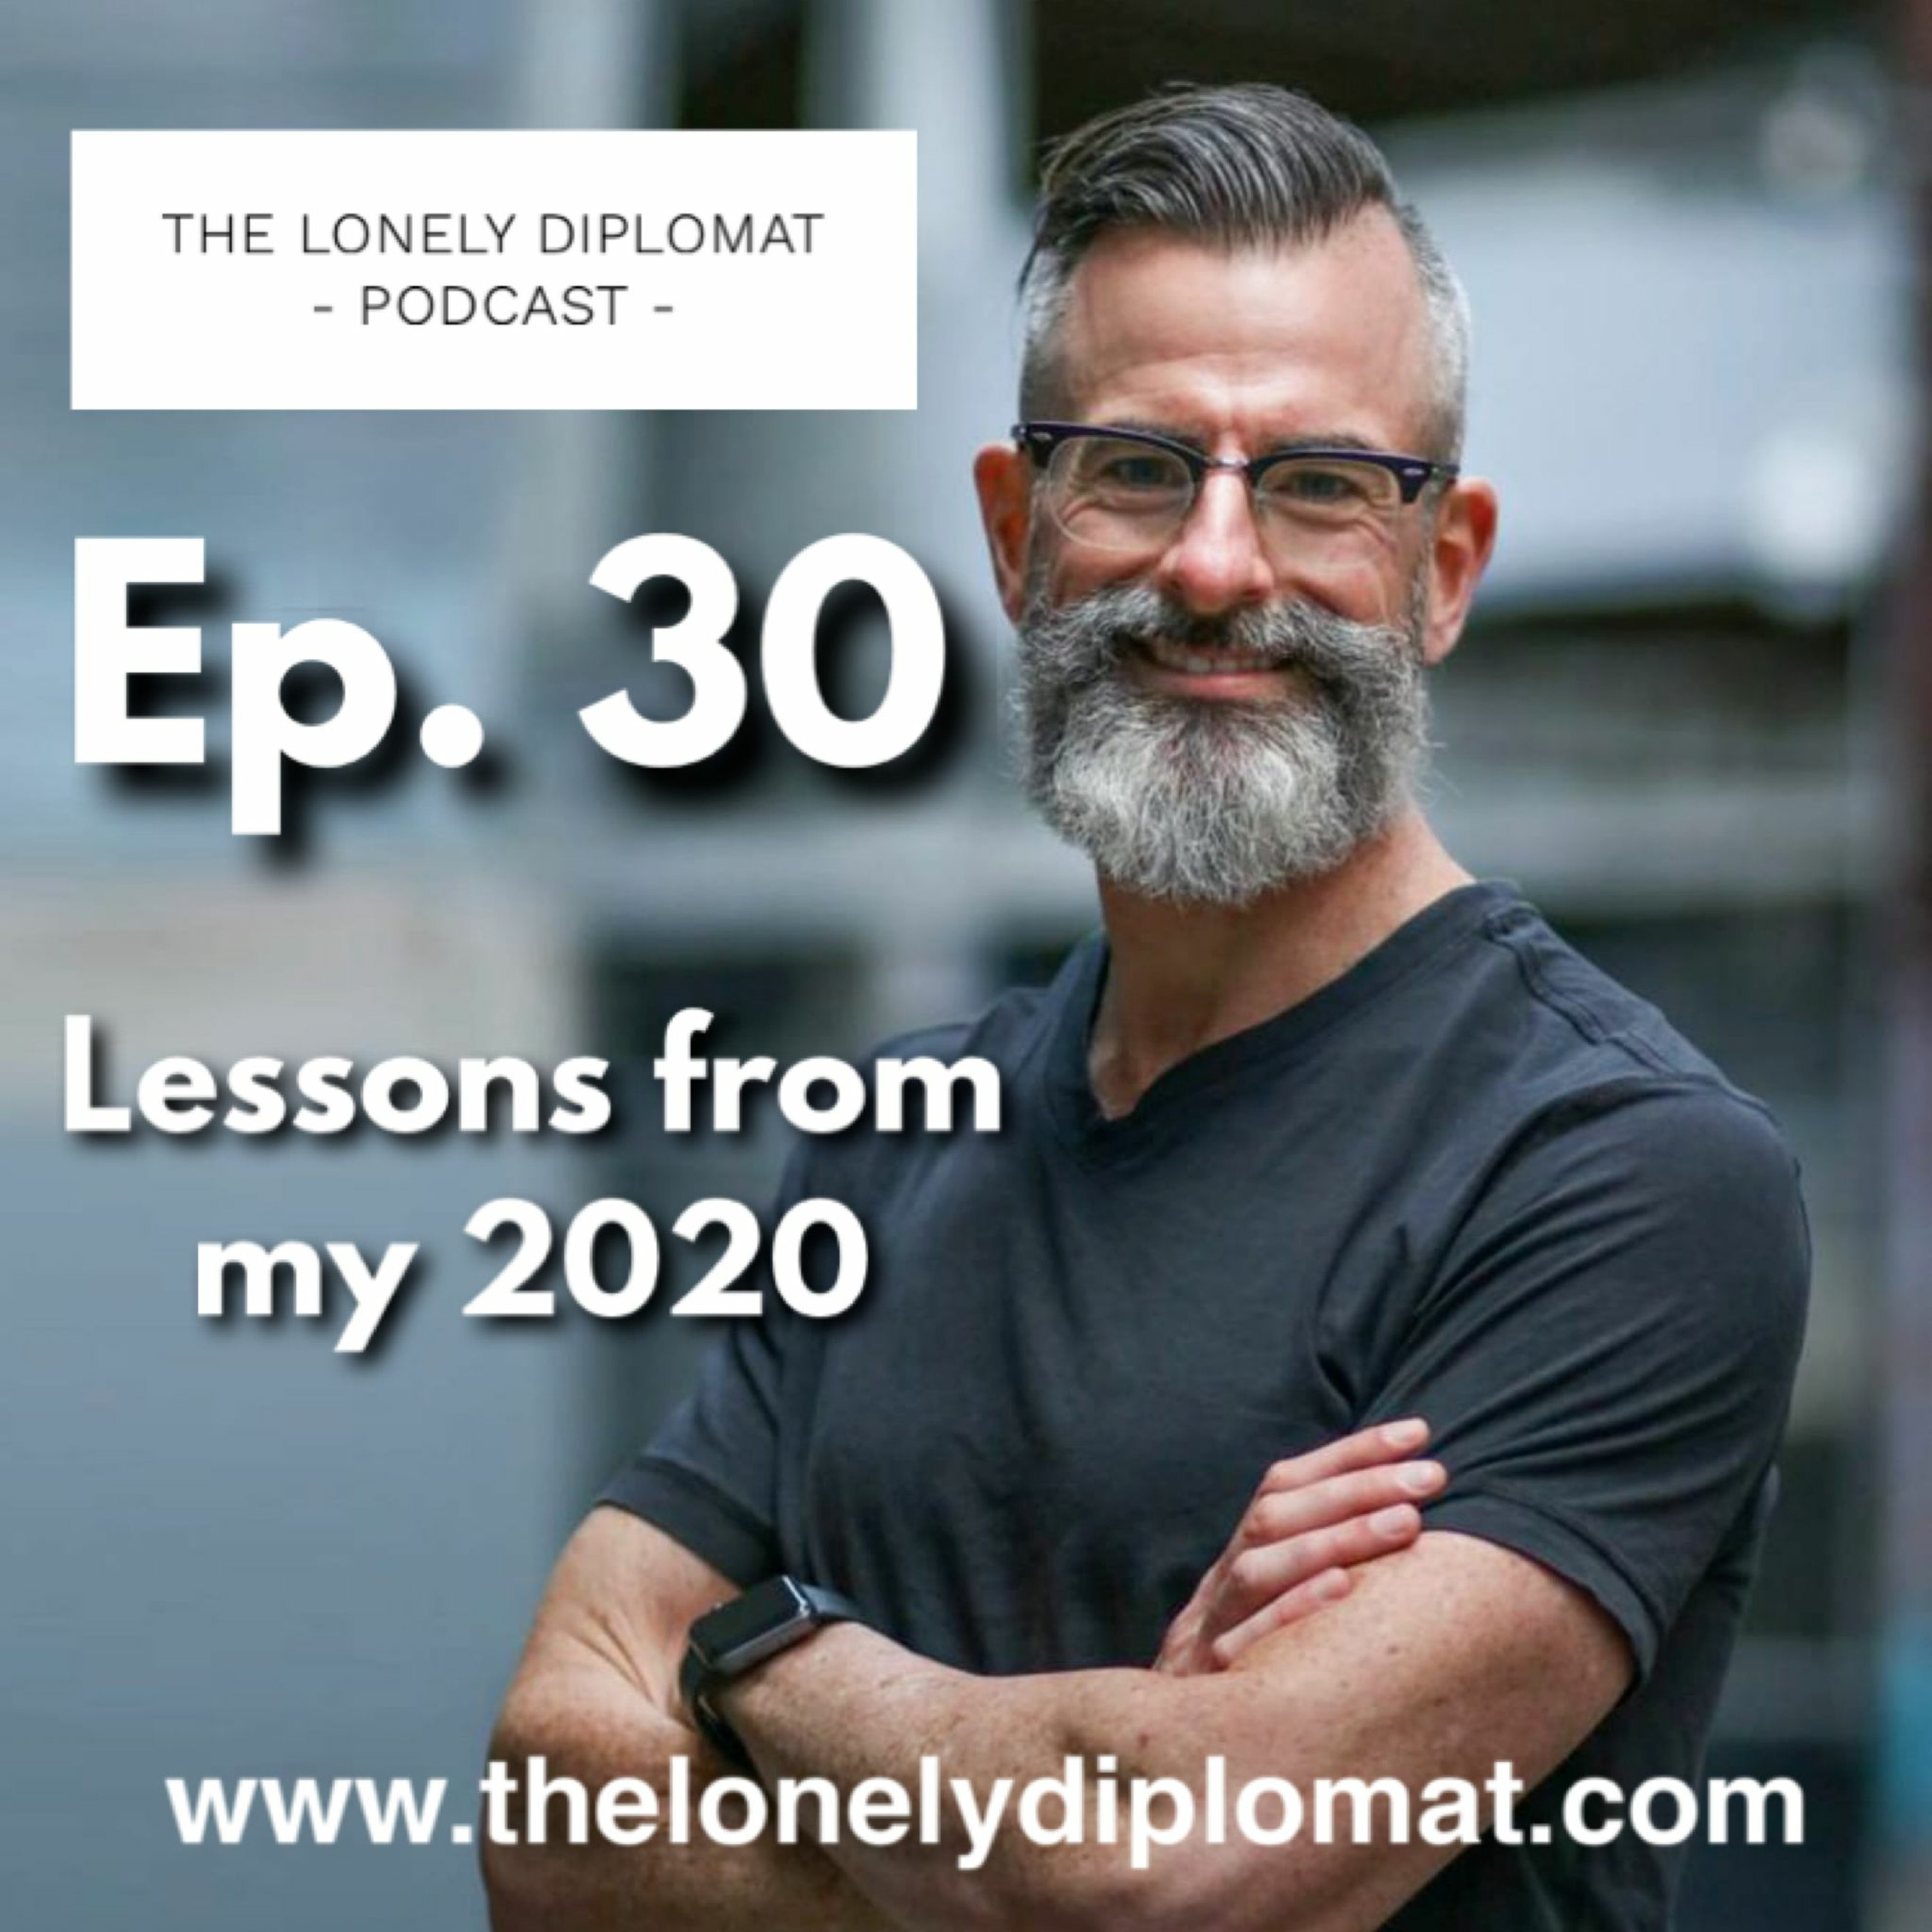 Ep. 30 - Lessons from my 2020